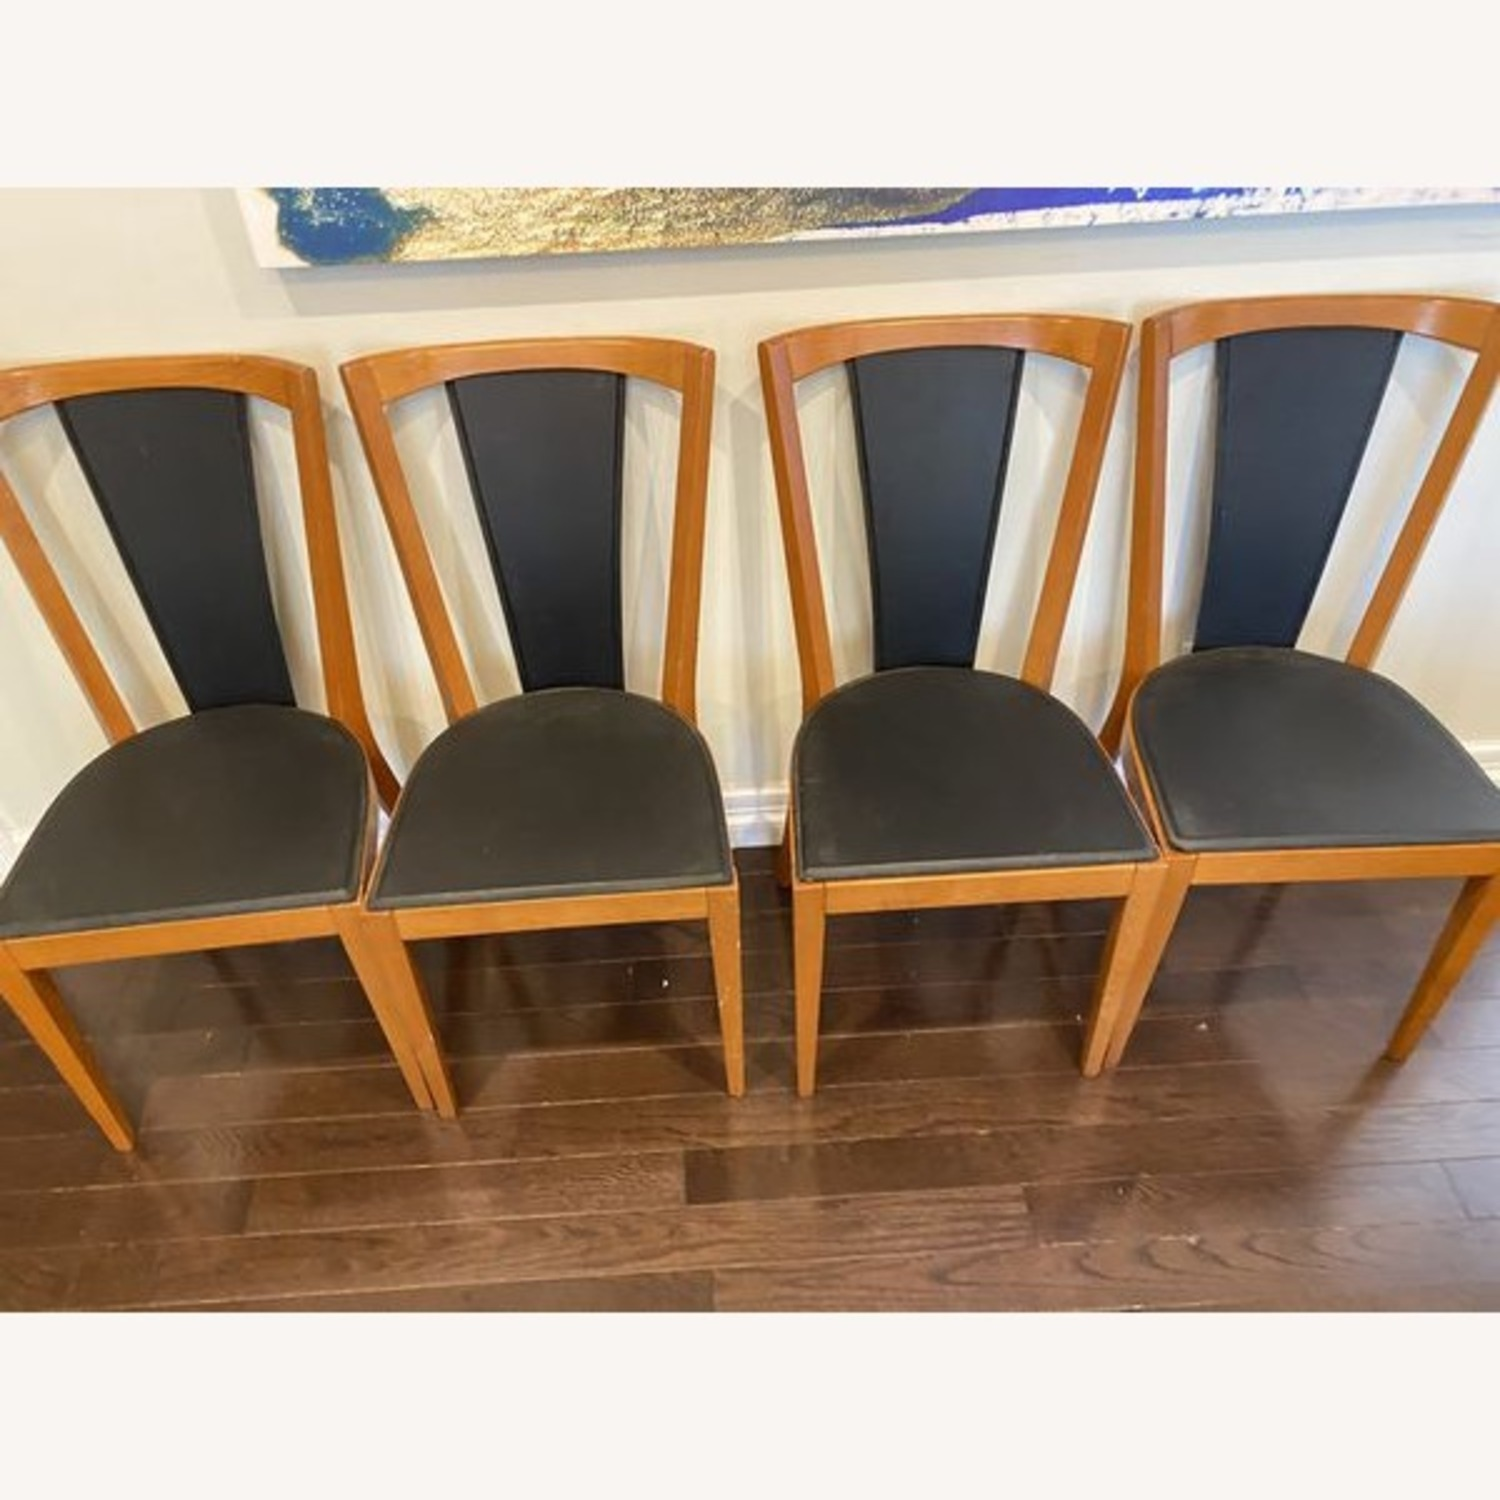 Set of Black Leather Board Wooden Dining Chairs - image-3